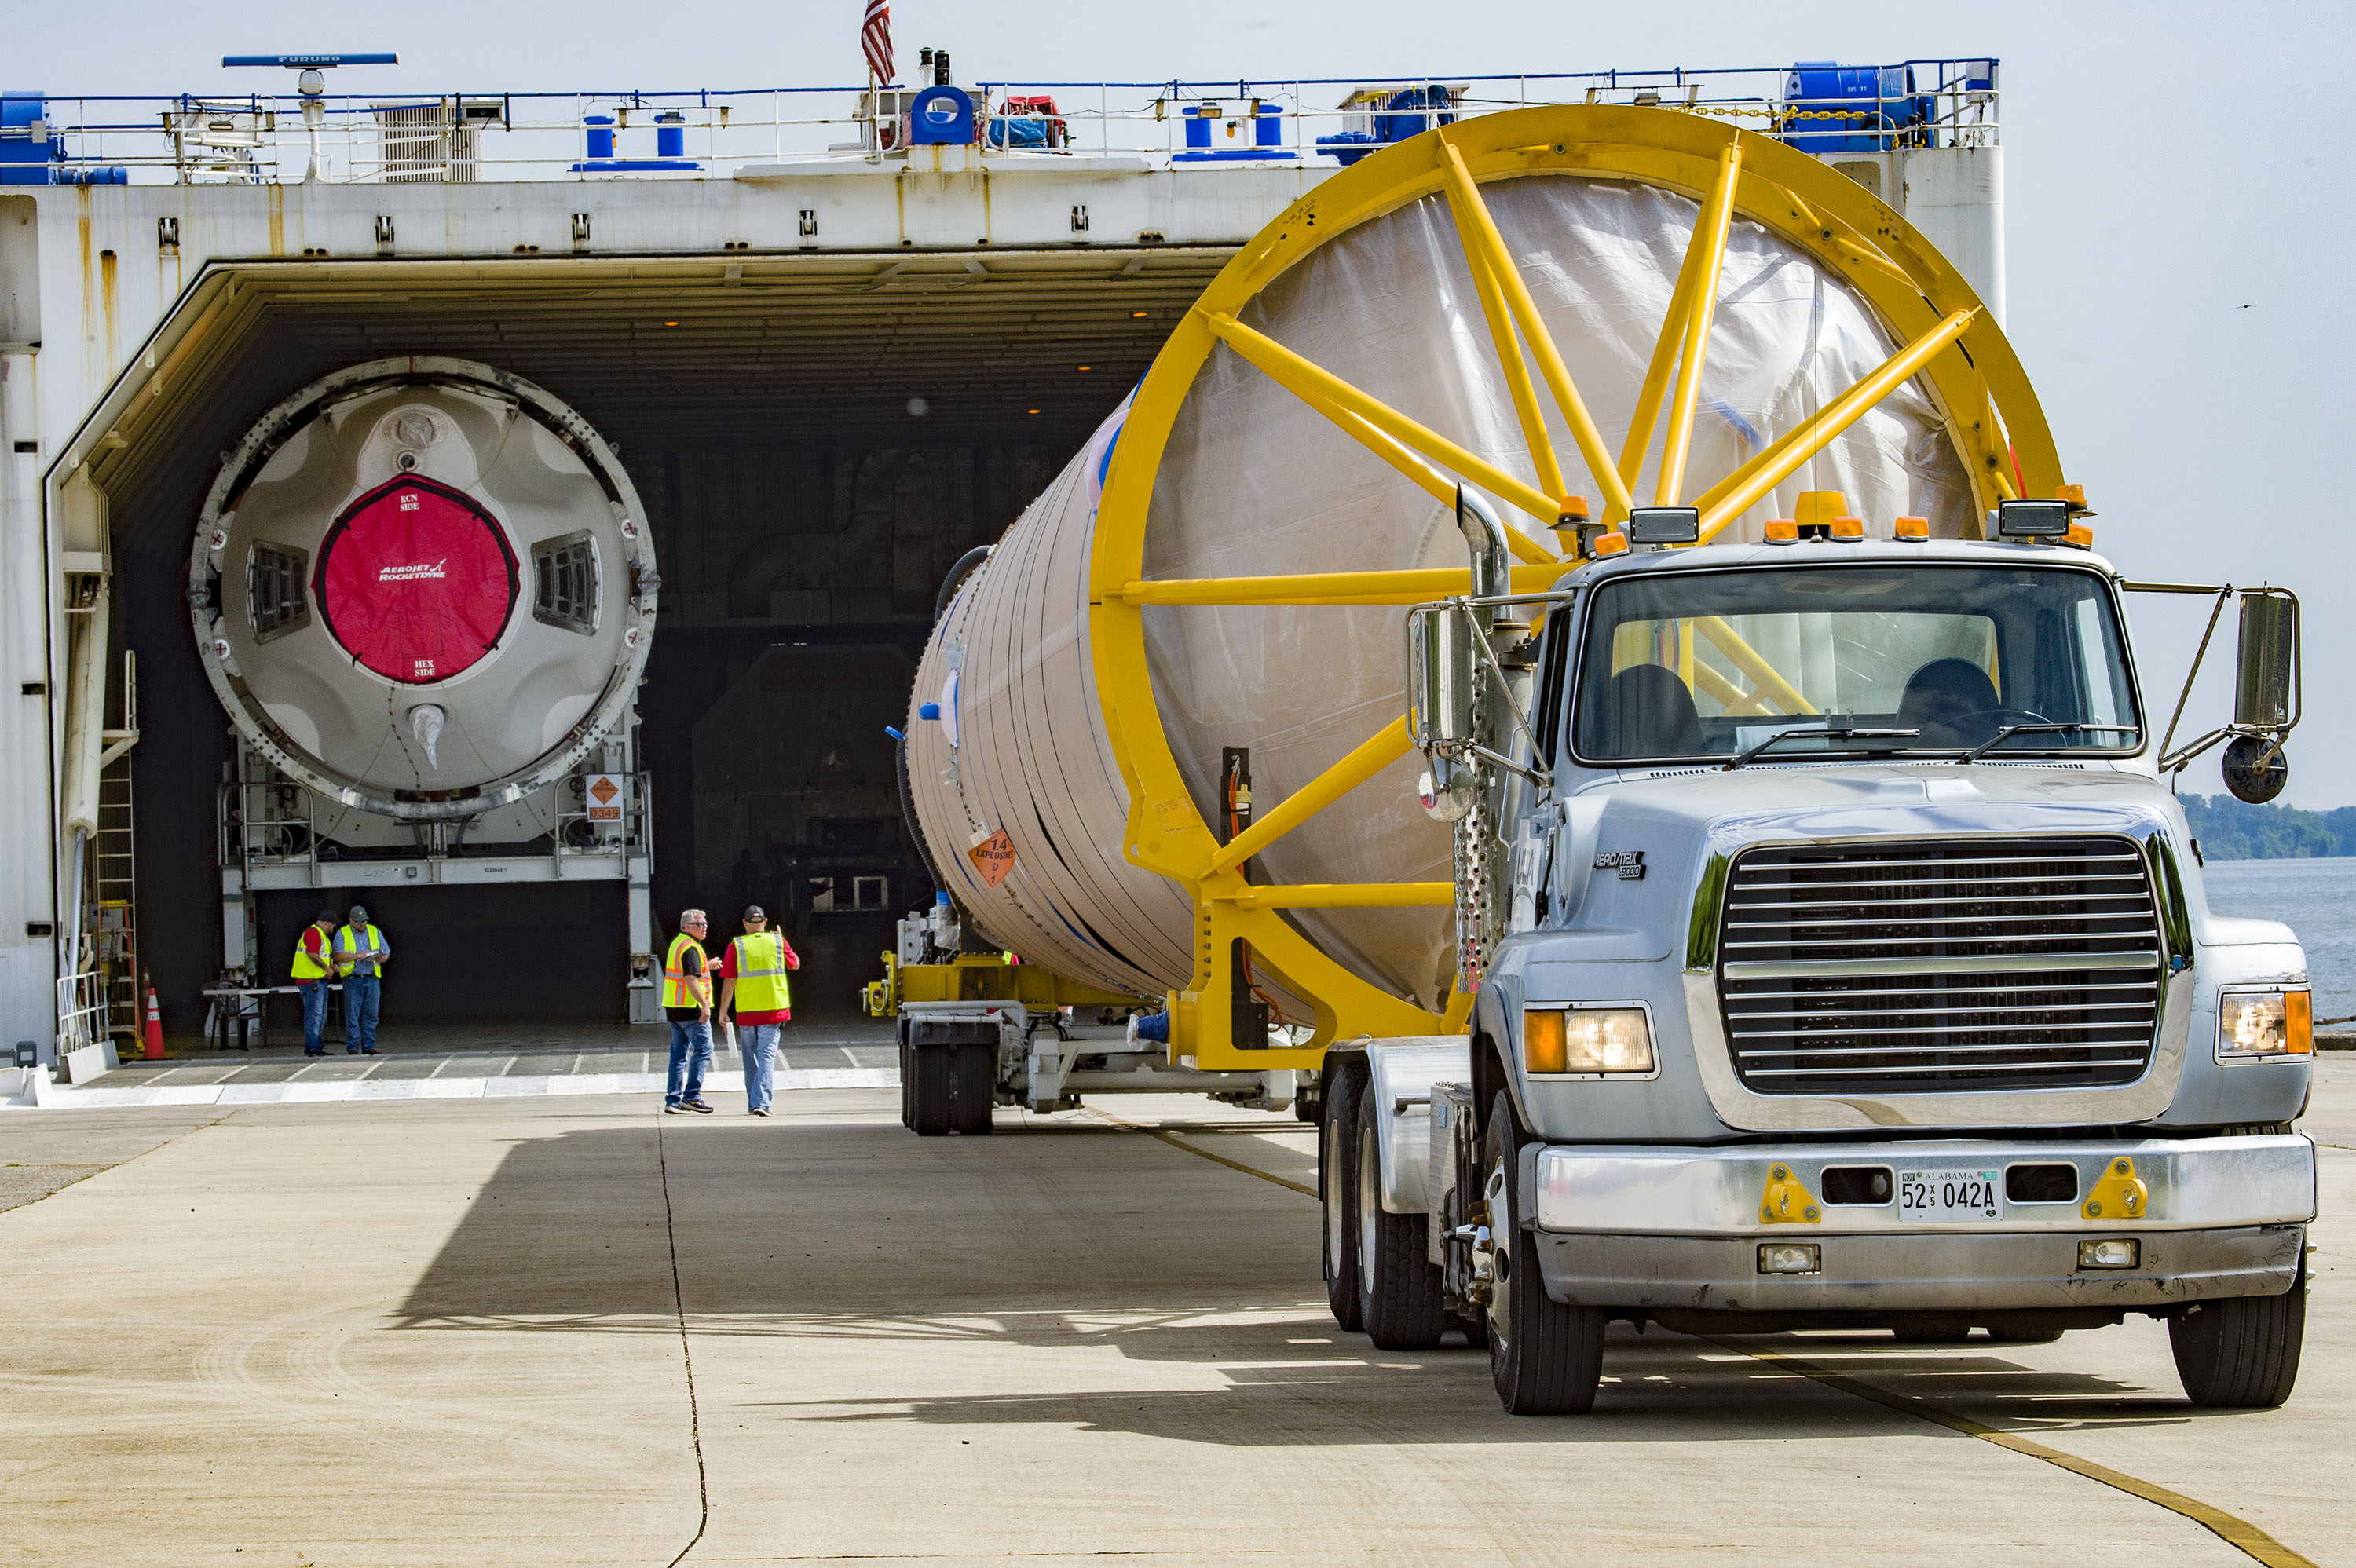 The Atlas V to Lift Starliner with Astronauts Departs Factory for